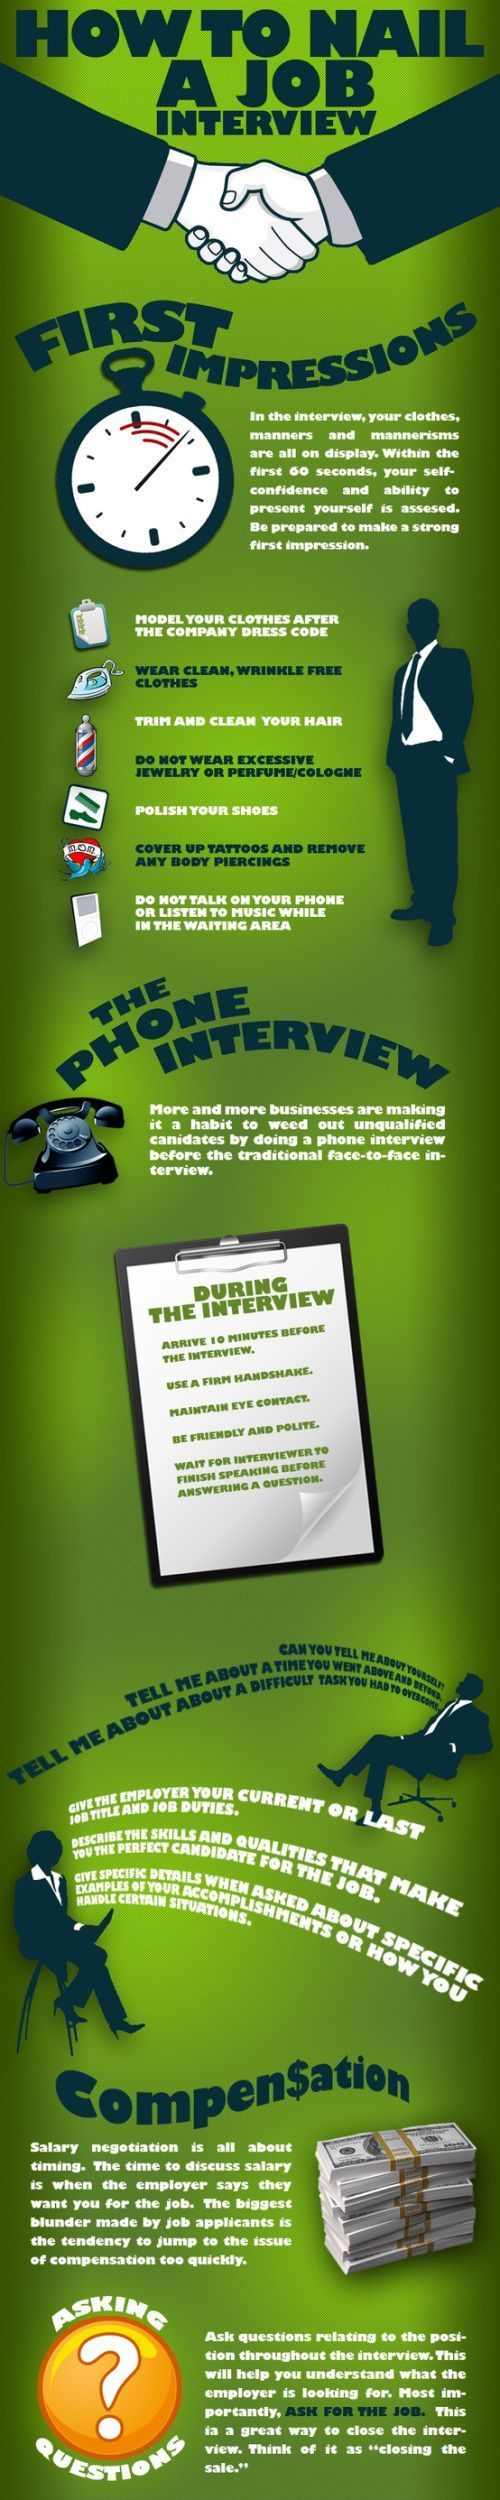 How to Nail a job interview. Great for my Principles of Business